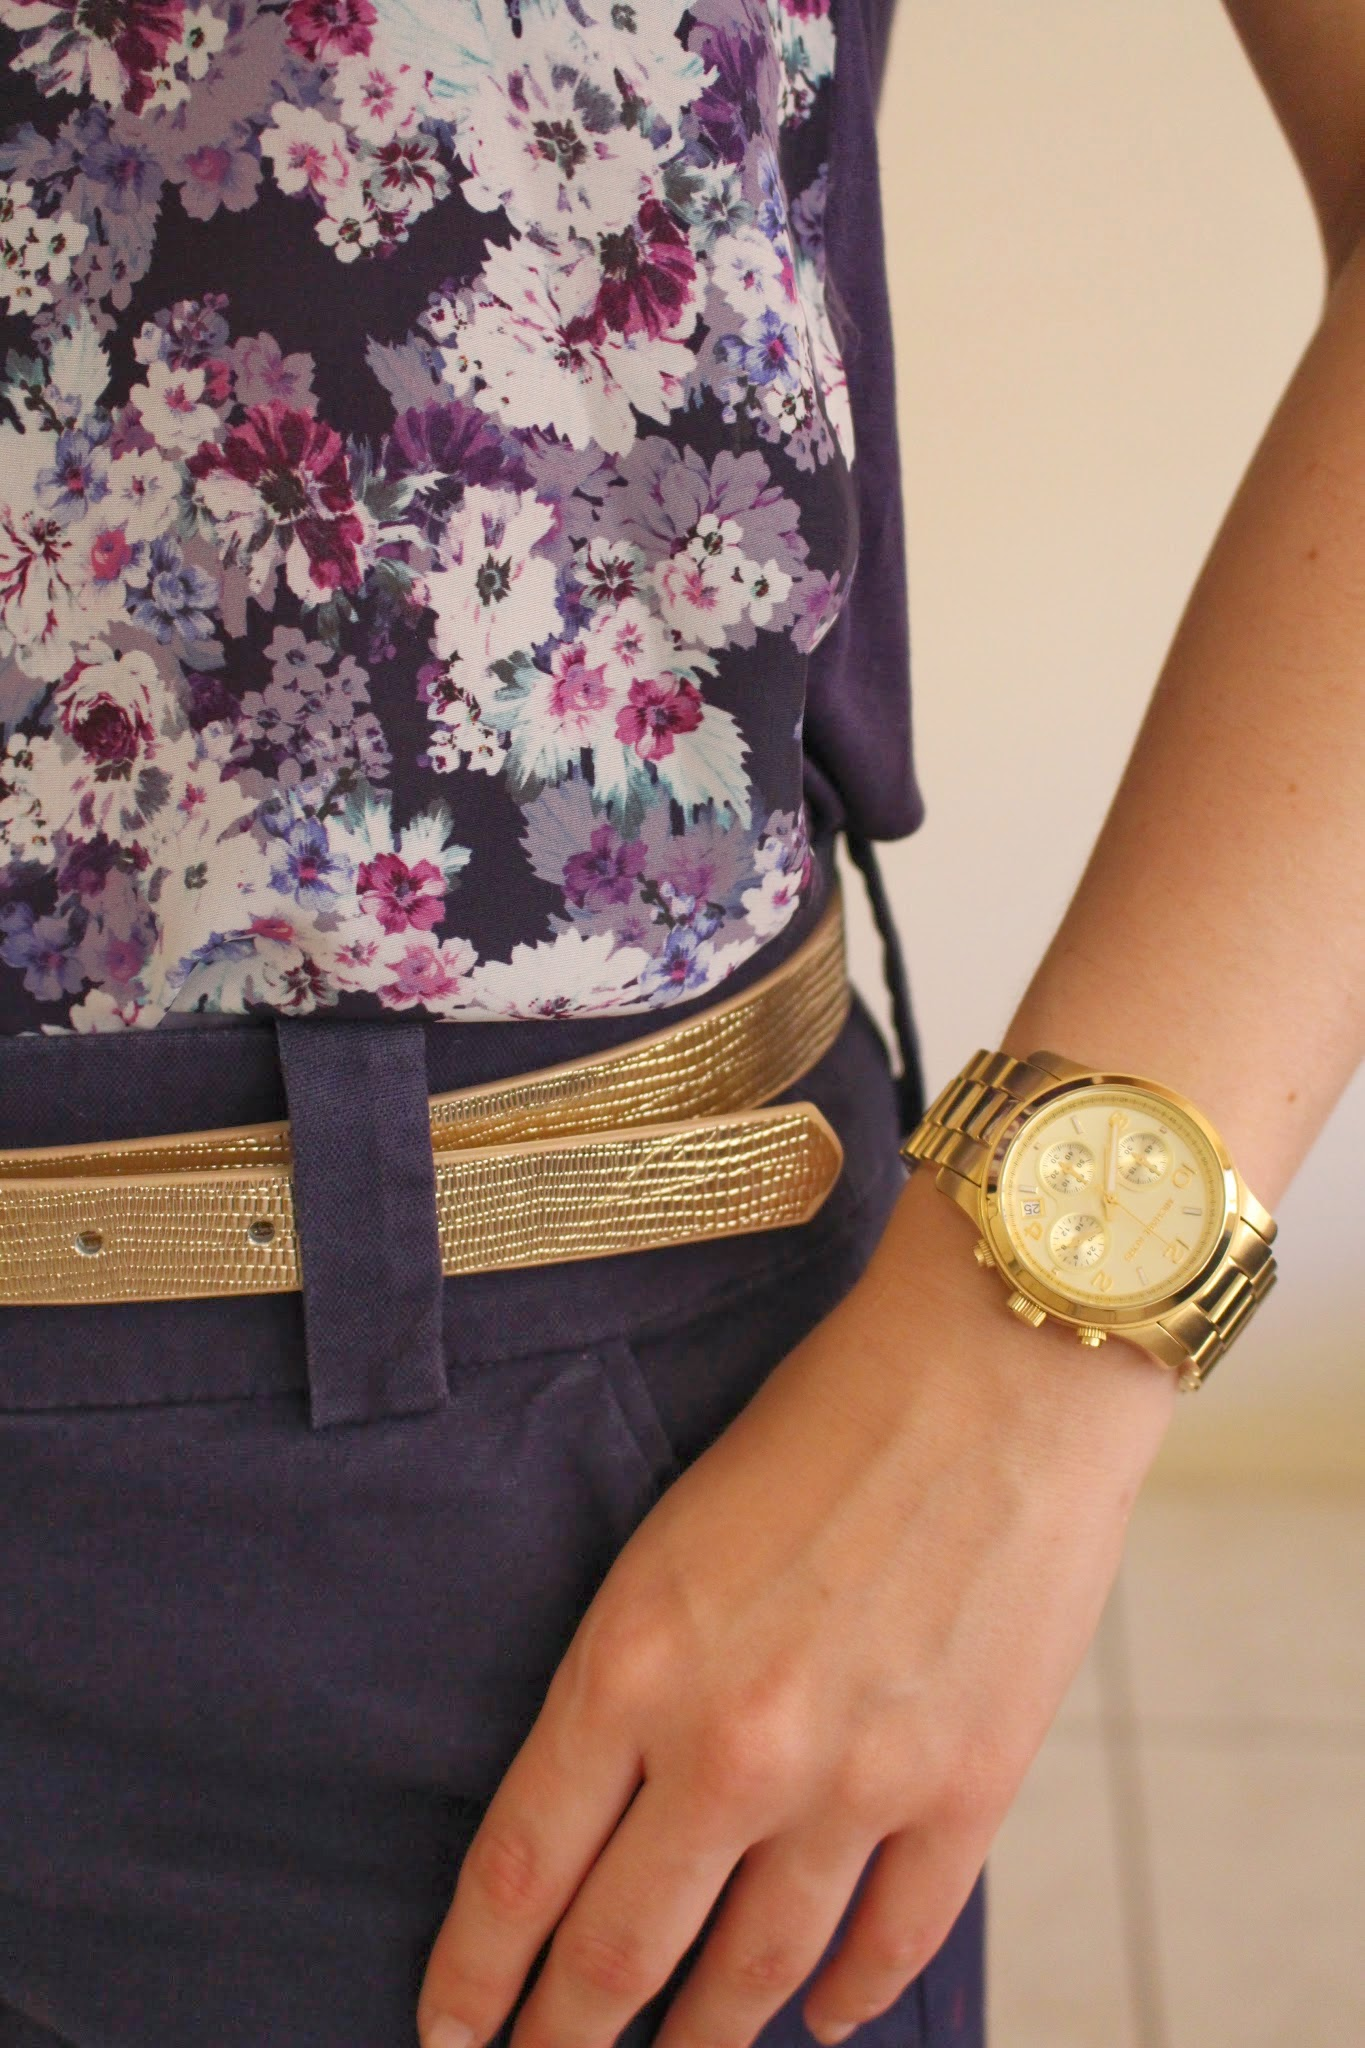 Navy high waisted tailored shorts, purple floral top with lace detailing, black sandals, gold michael kors watch, uni outfit, college outfit, everyday outfit, smart casual outfit